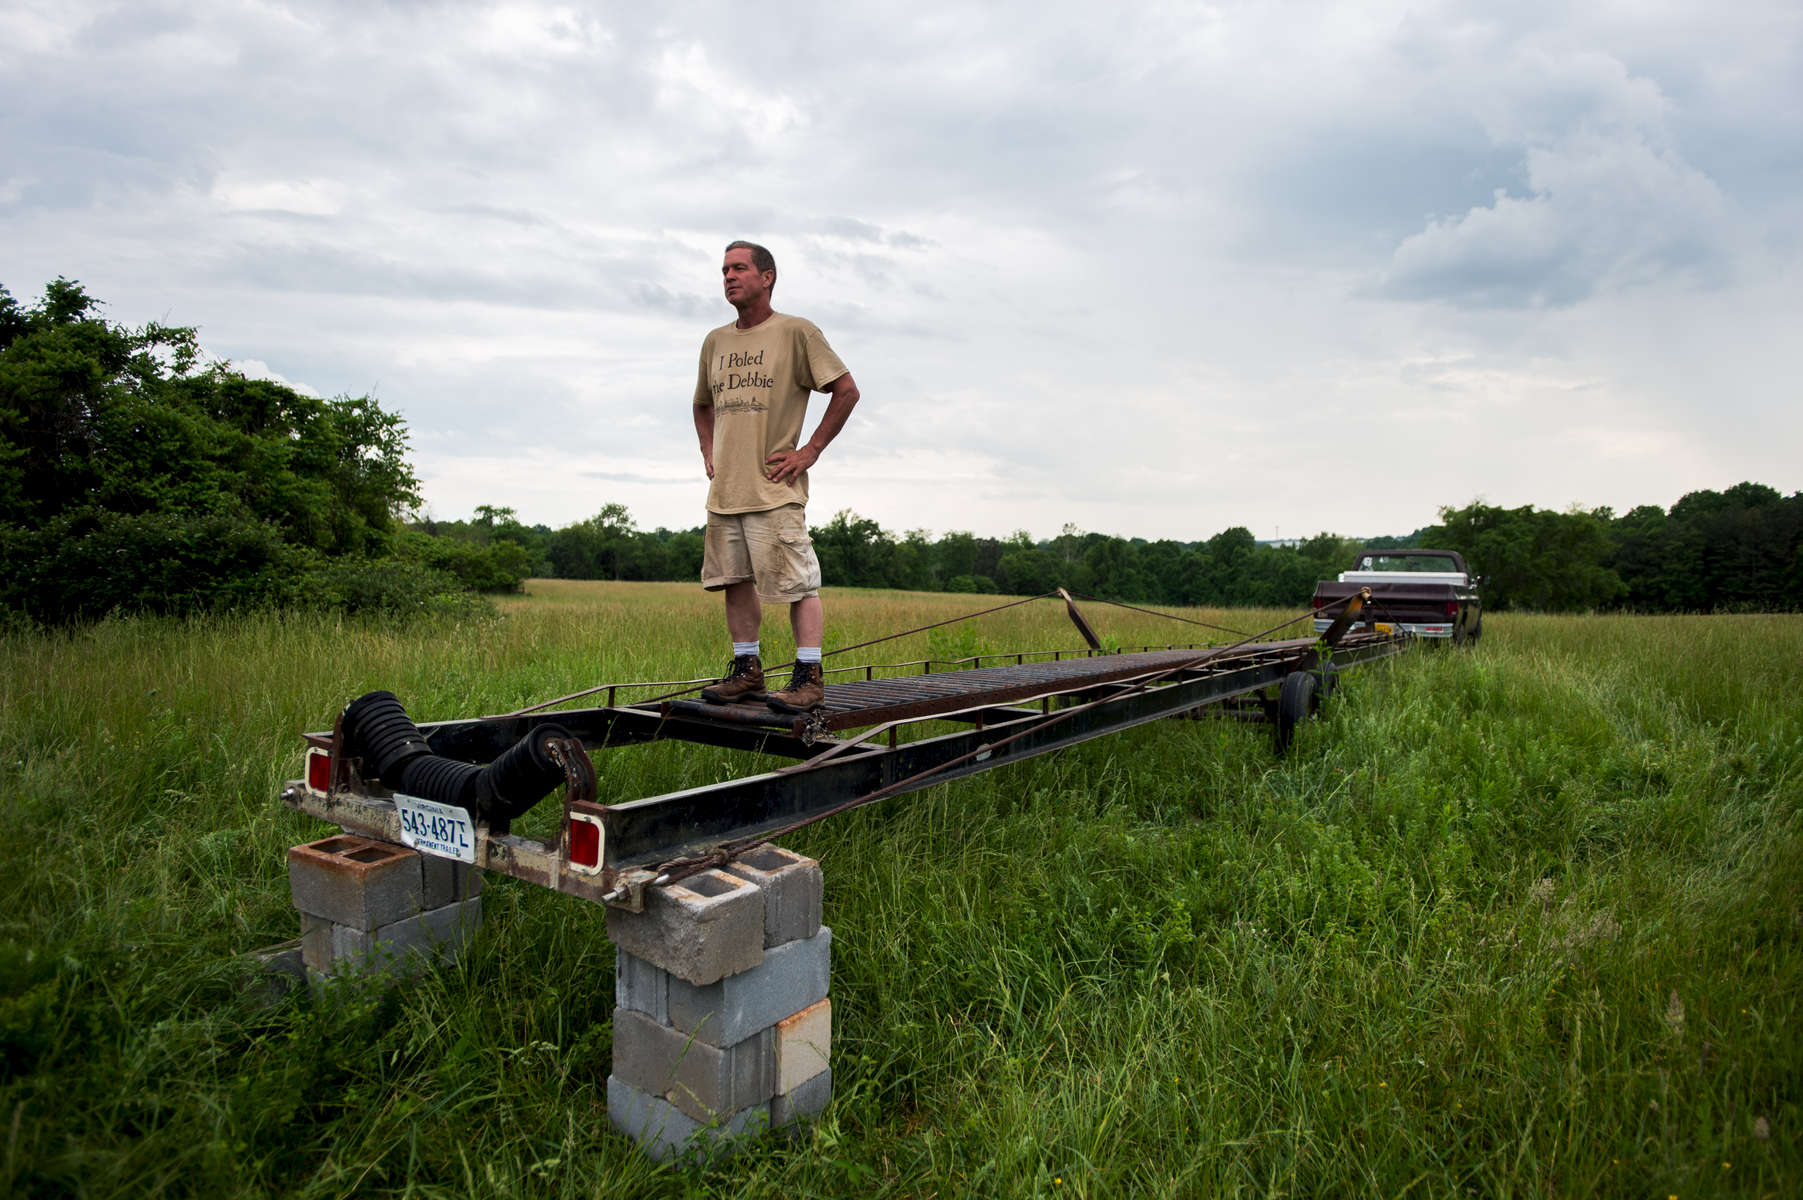 Robert Schumacher pauses for a moment as he stands on a trailer during a cook out for members of the batteau community in and around Lynchburg. Around 50 people came together to flip the Lizzie Langley over and load her onto a trailer for transportation to the James River.